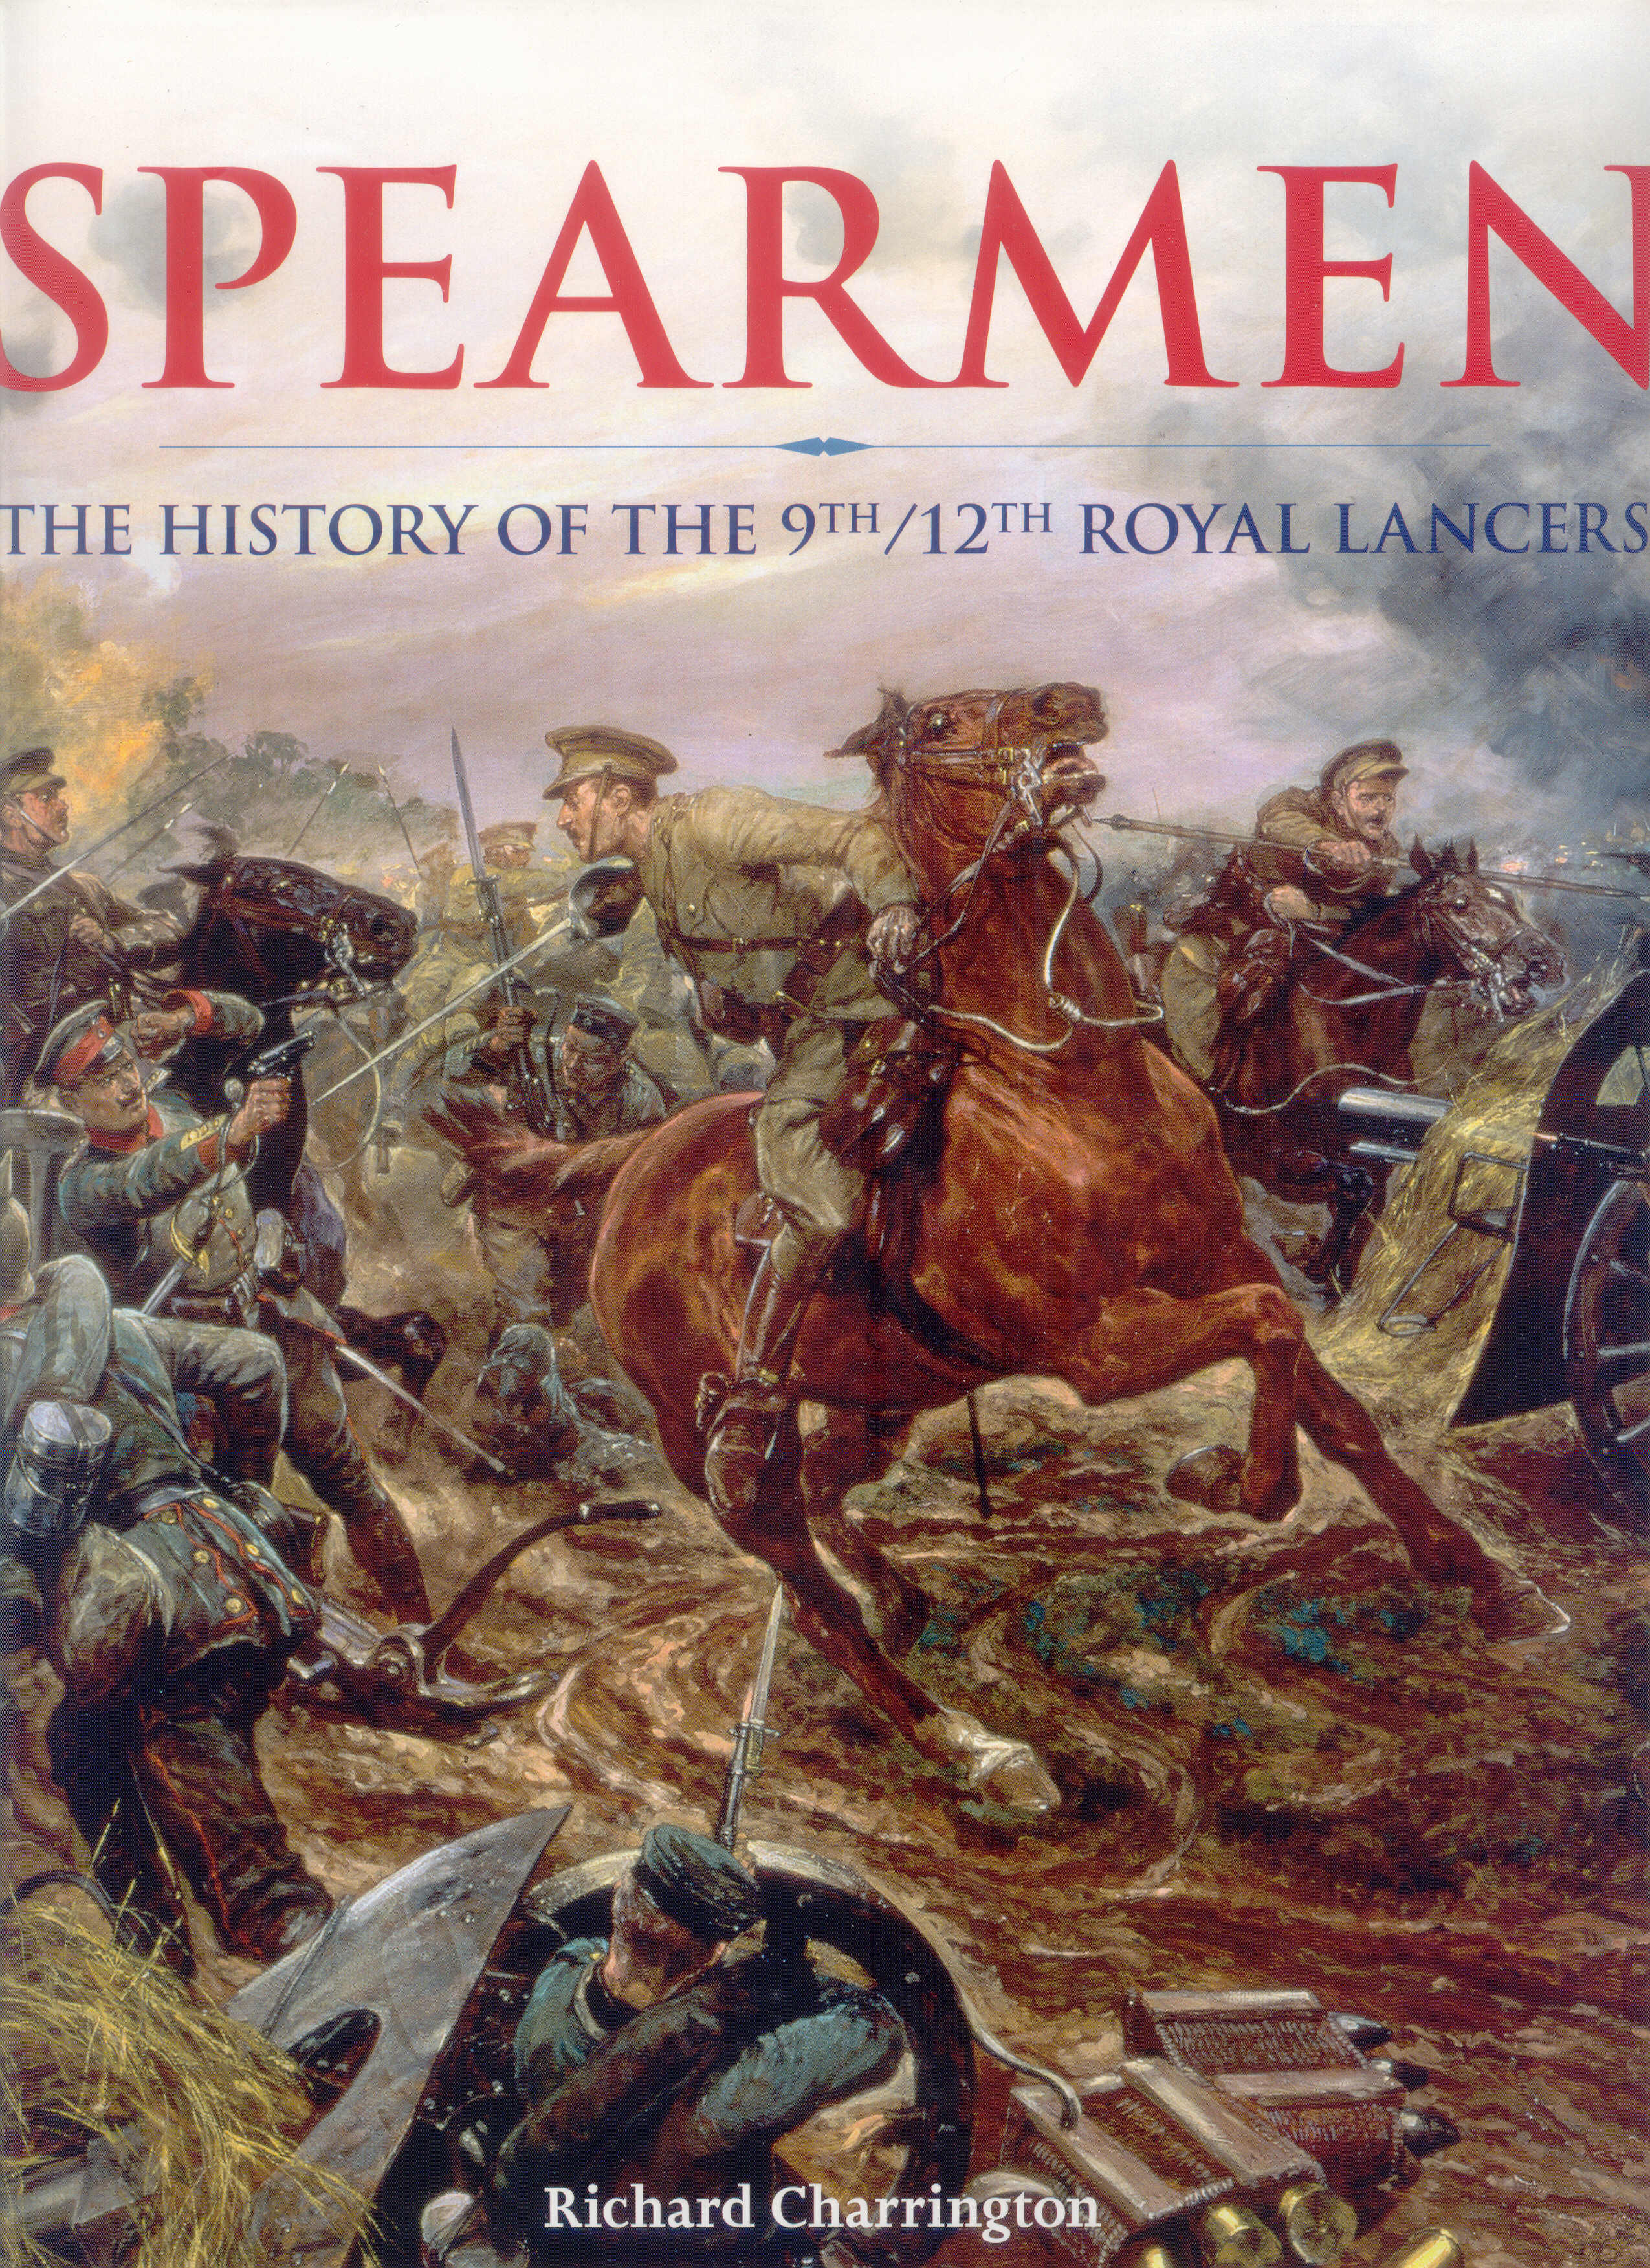 Spearmen the history of the 9th12th Royal Lancers